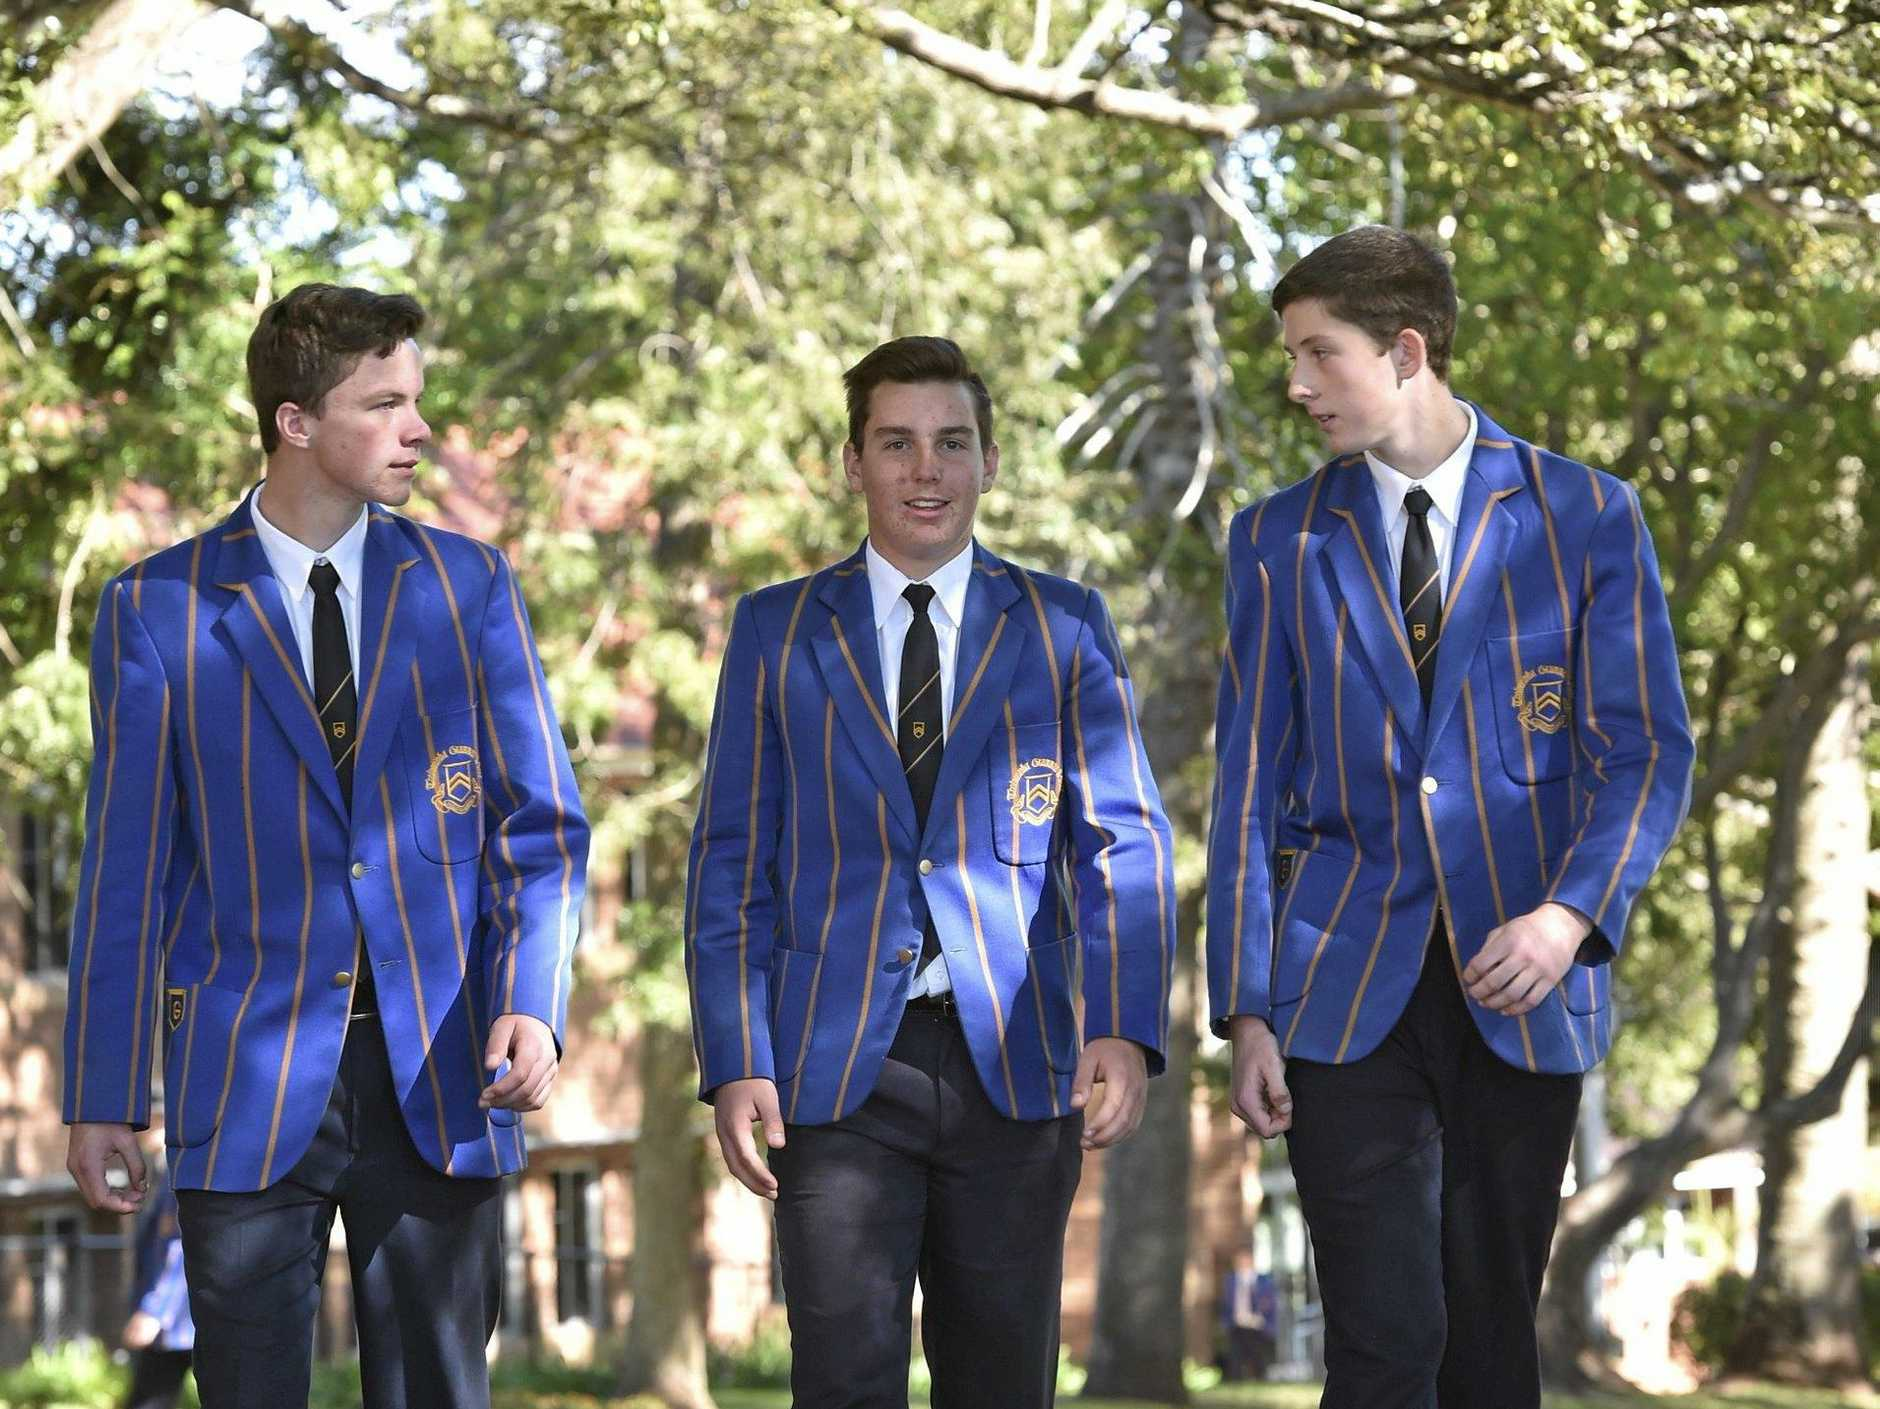 Toowoomba Grammar School students share their opinions about their political aspirations and wishes. Year 11 students, from left; Bradley Evans, Josh Eiser and Sean Sorour . June 9, 2016